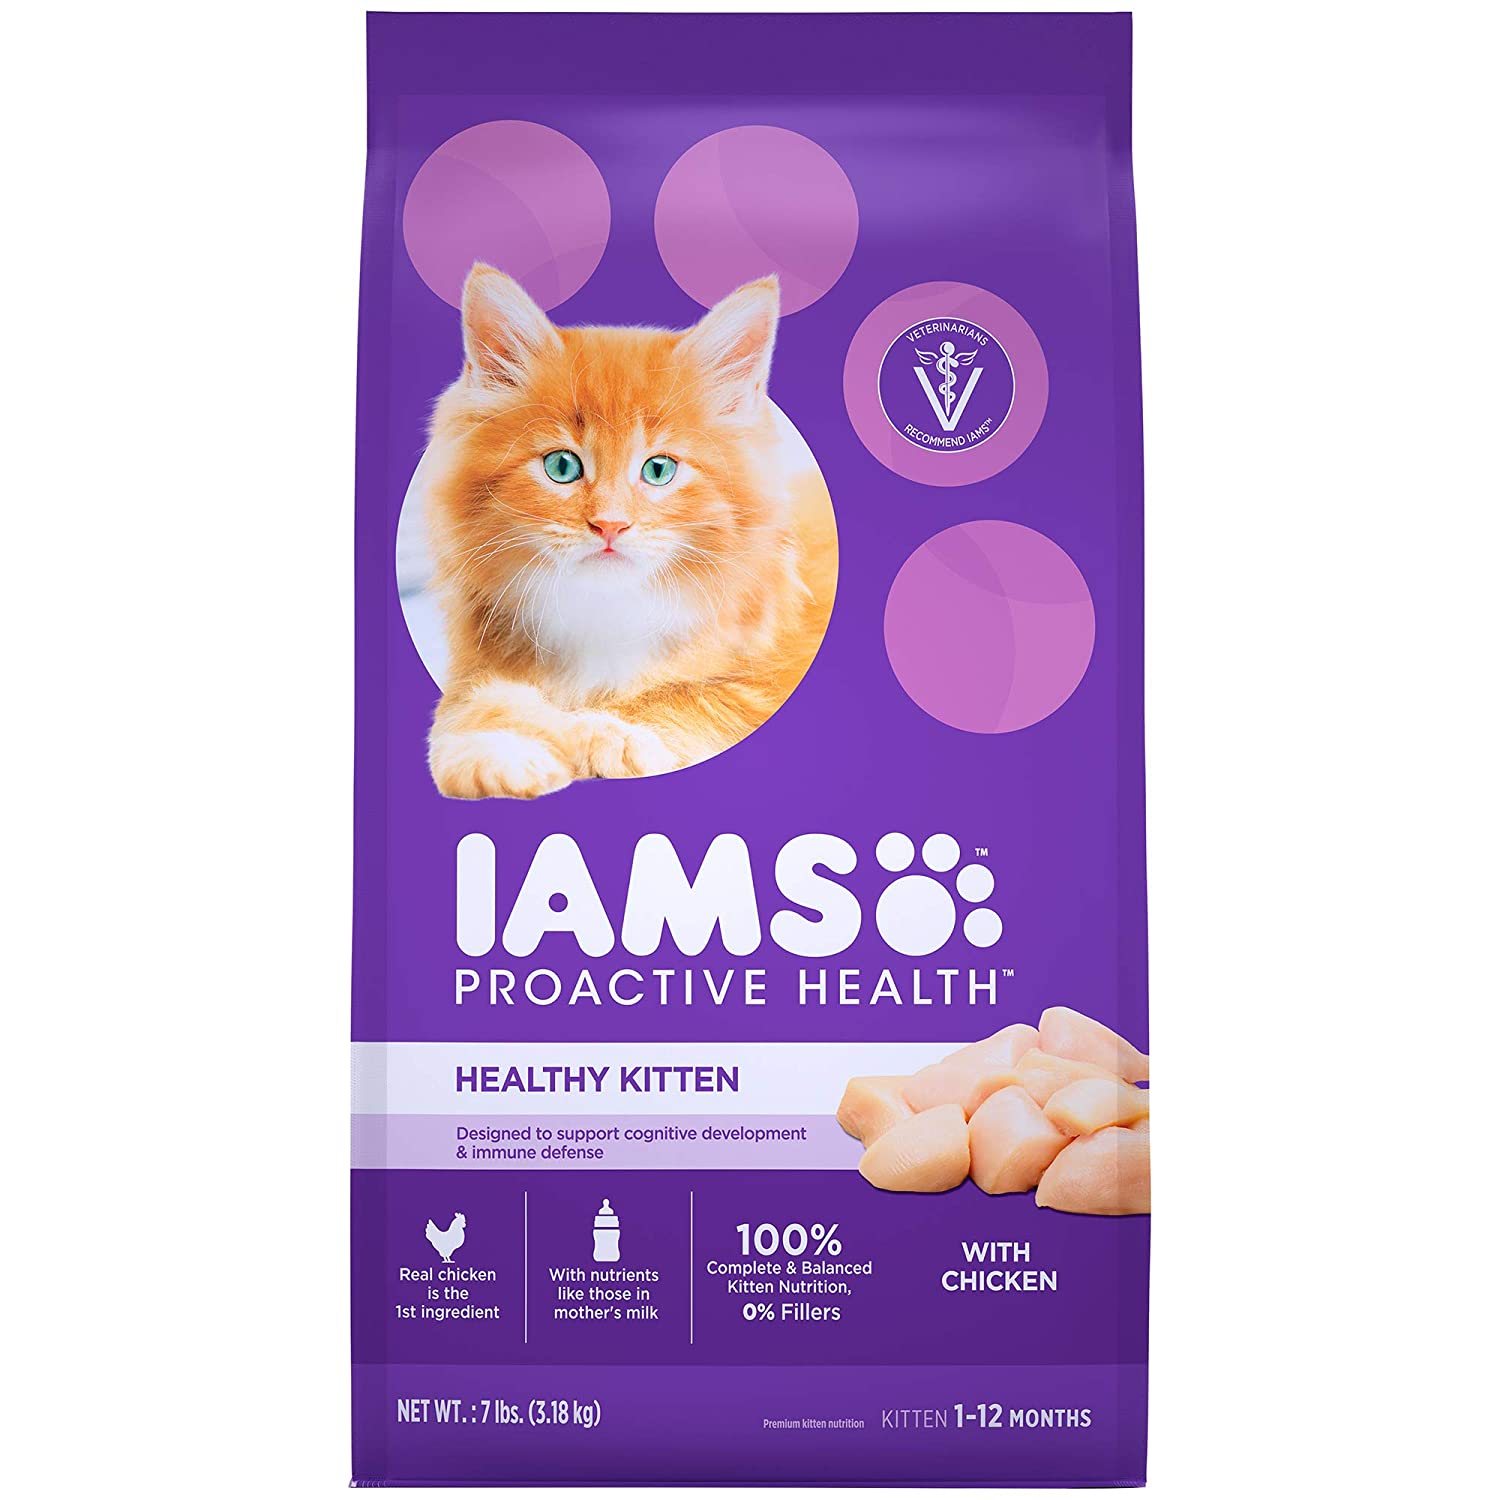 Iams Proactive Health Kitten Dry Cat Food 7 Pounds Amazon In Home Kitchen